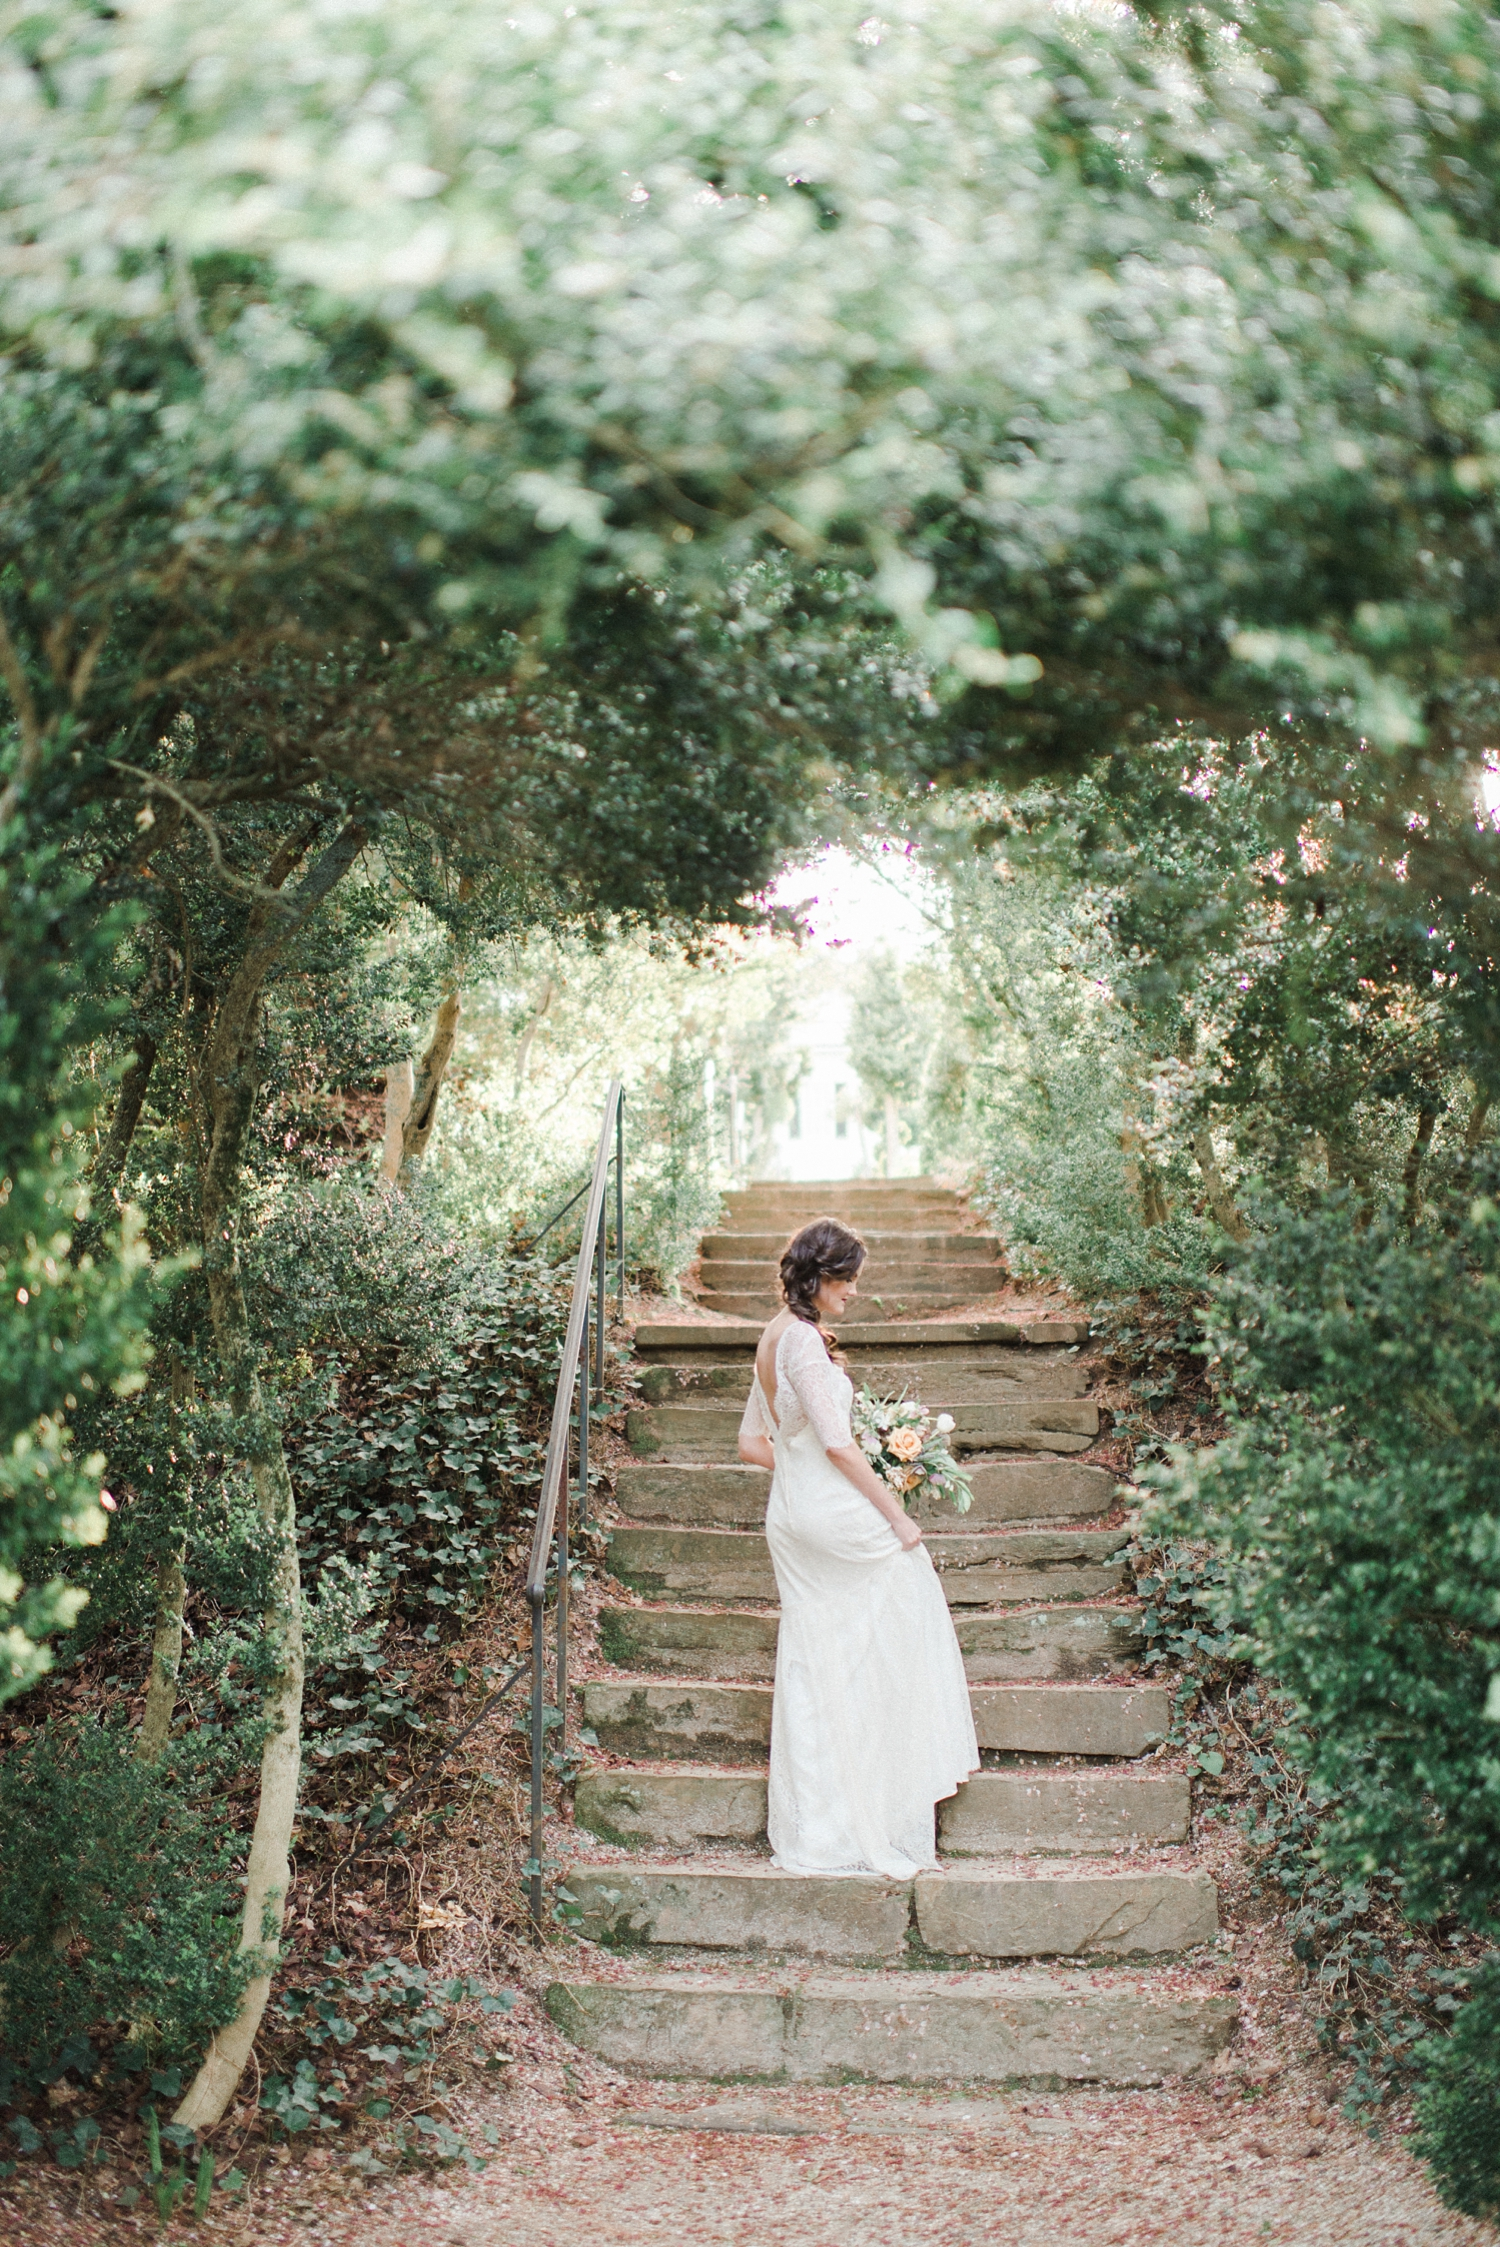 cottage_hill_herb_inspired_wedding_Oatlands_VA_wedding_Photographer_0051.jpg